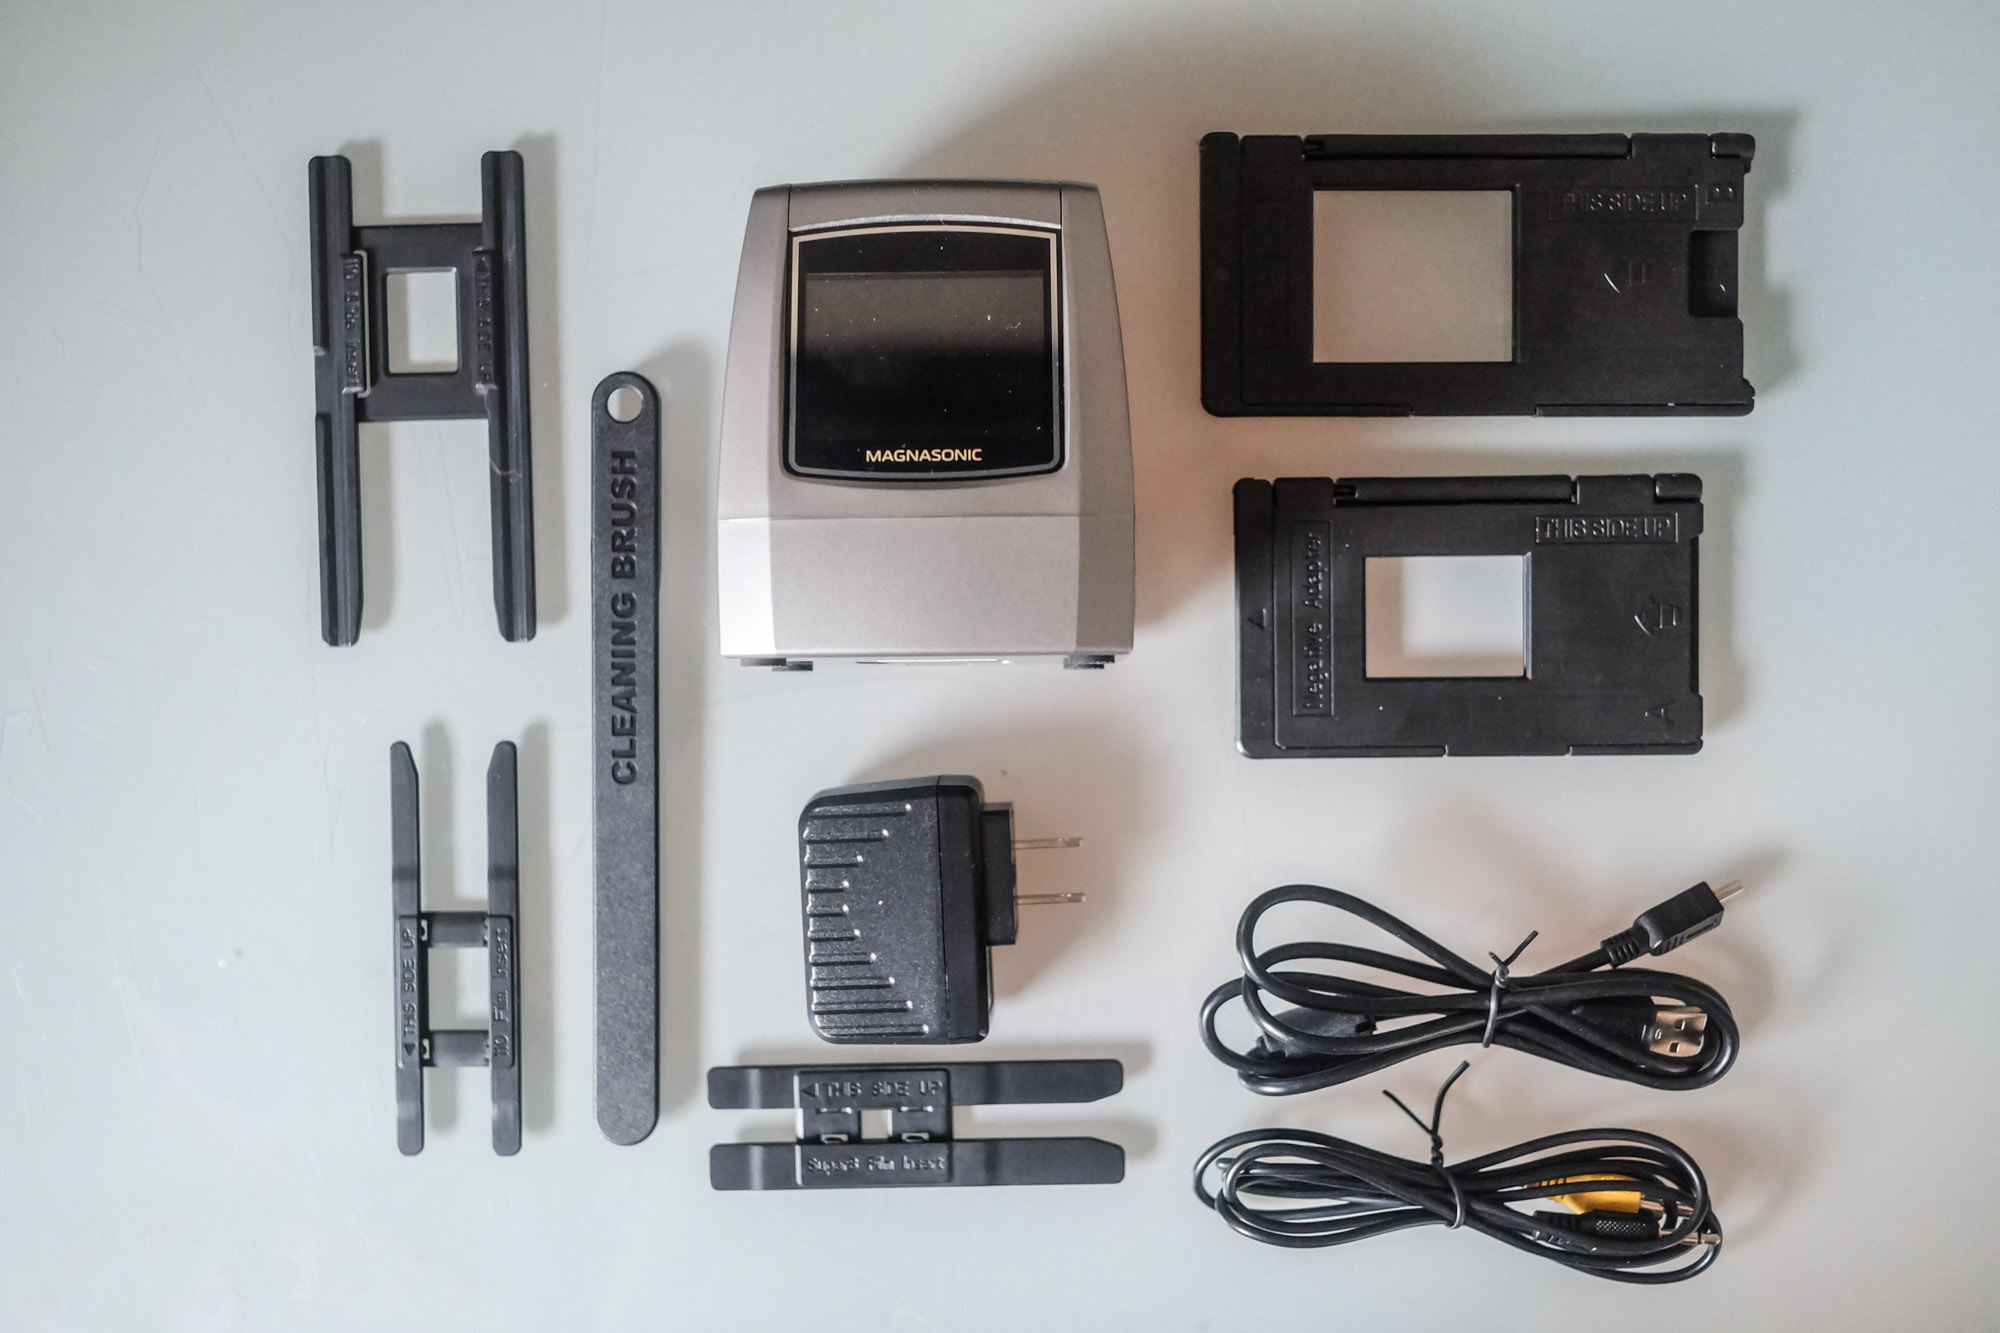 Magnasonic film Scanner—a photo of the contents of the box